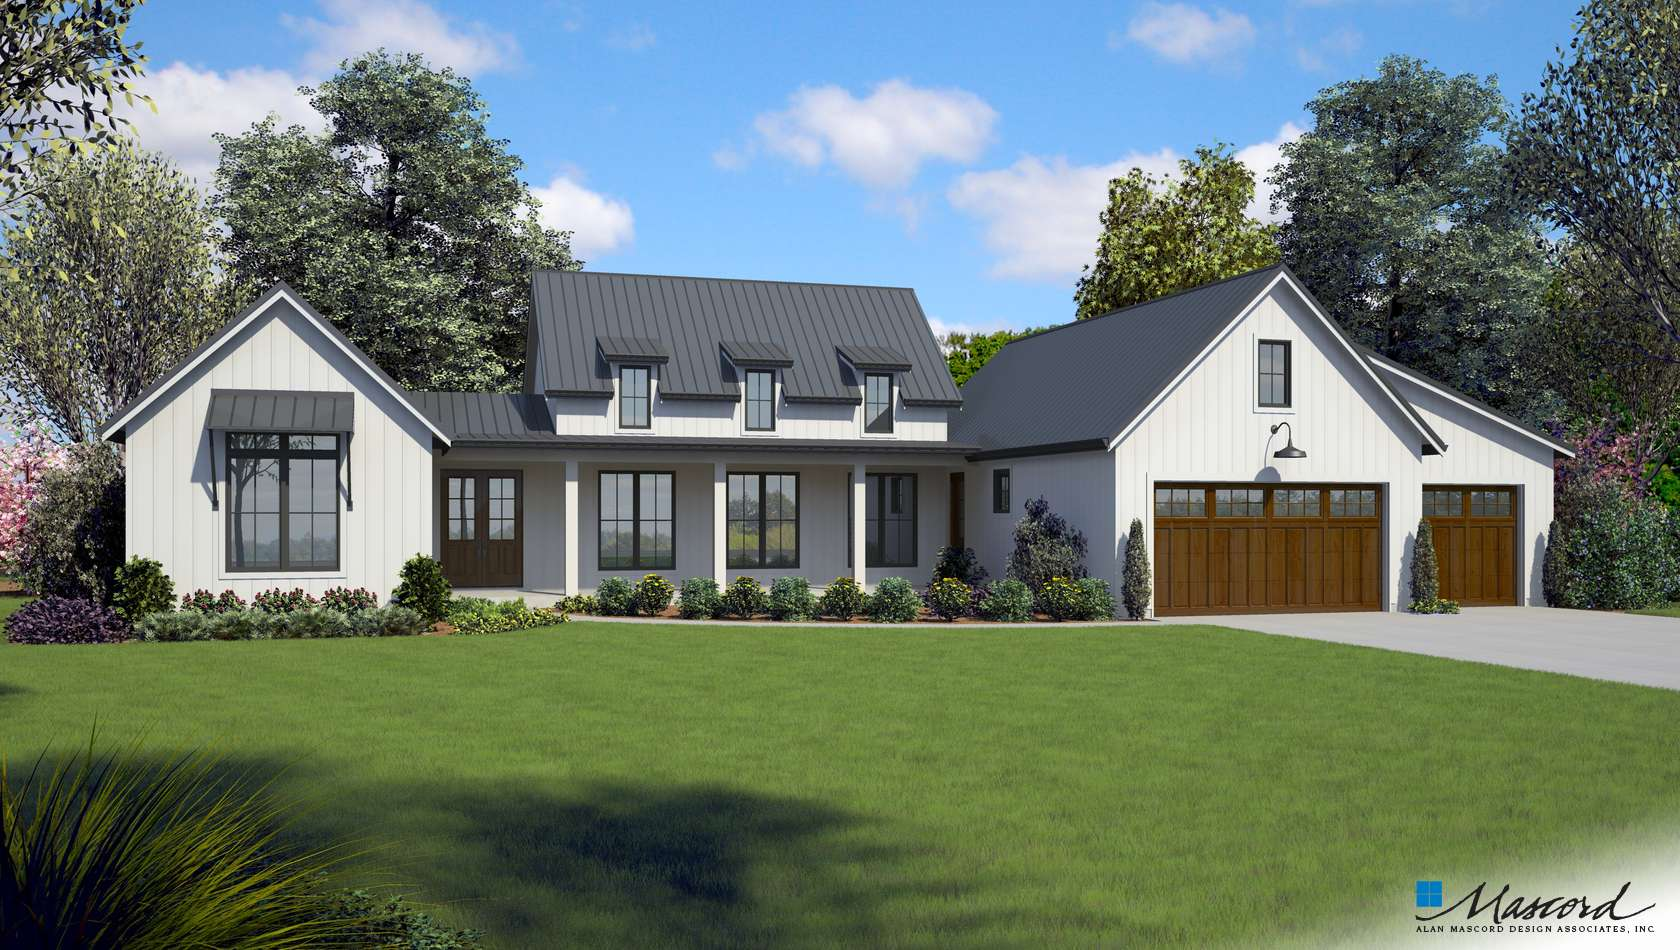 Main image for house plan 1258: The Saddleridge